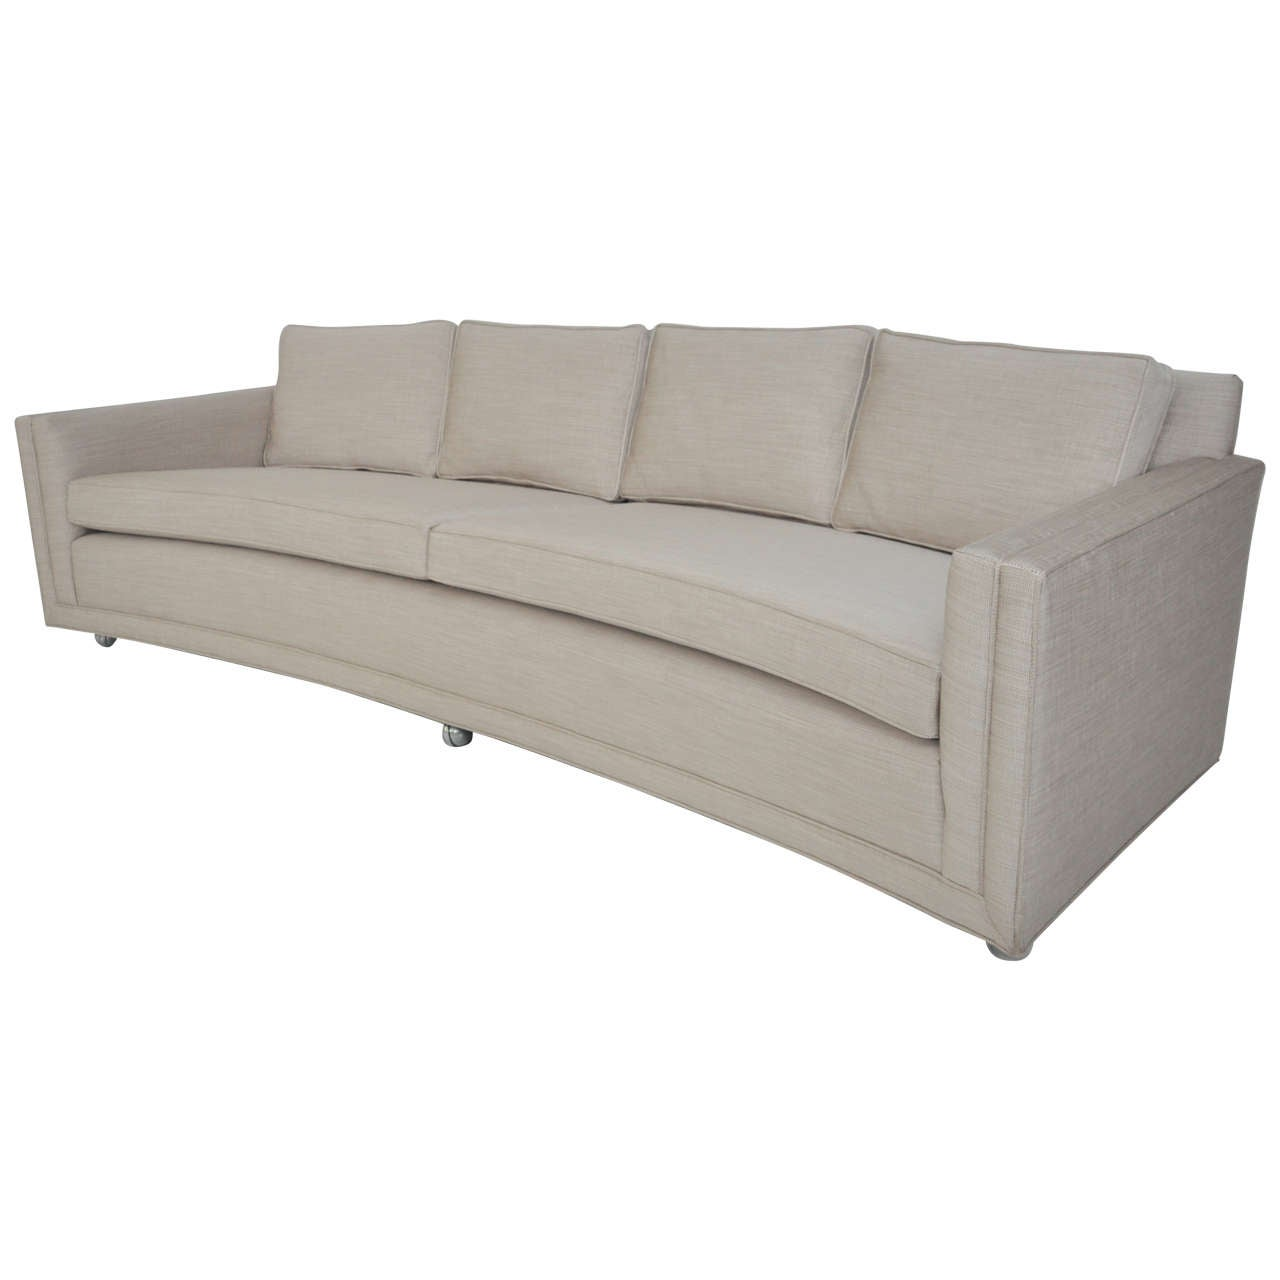 dunbar curved sofa by edward wormley for sale at 1stdibs